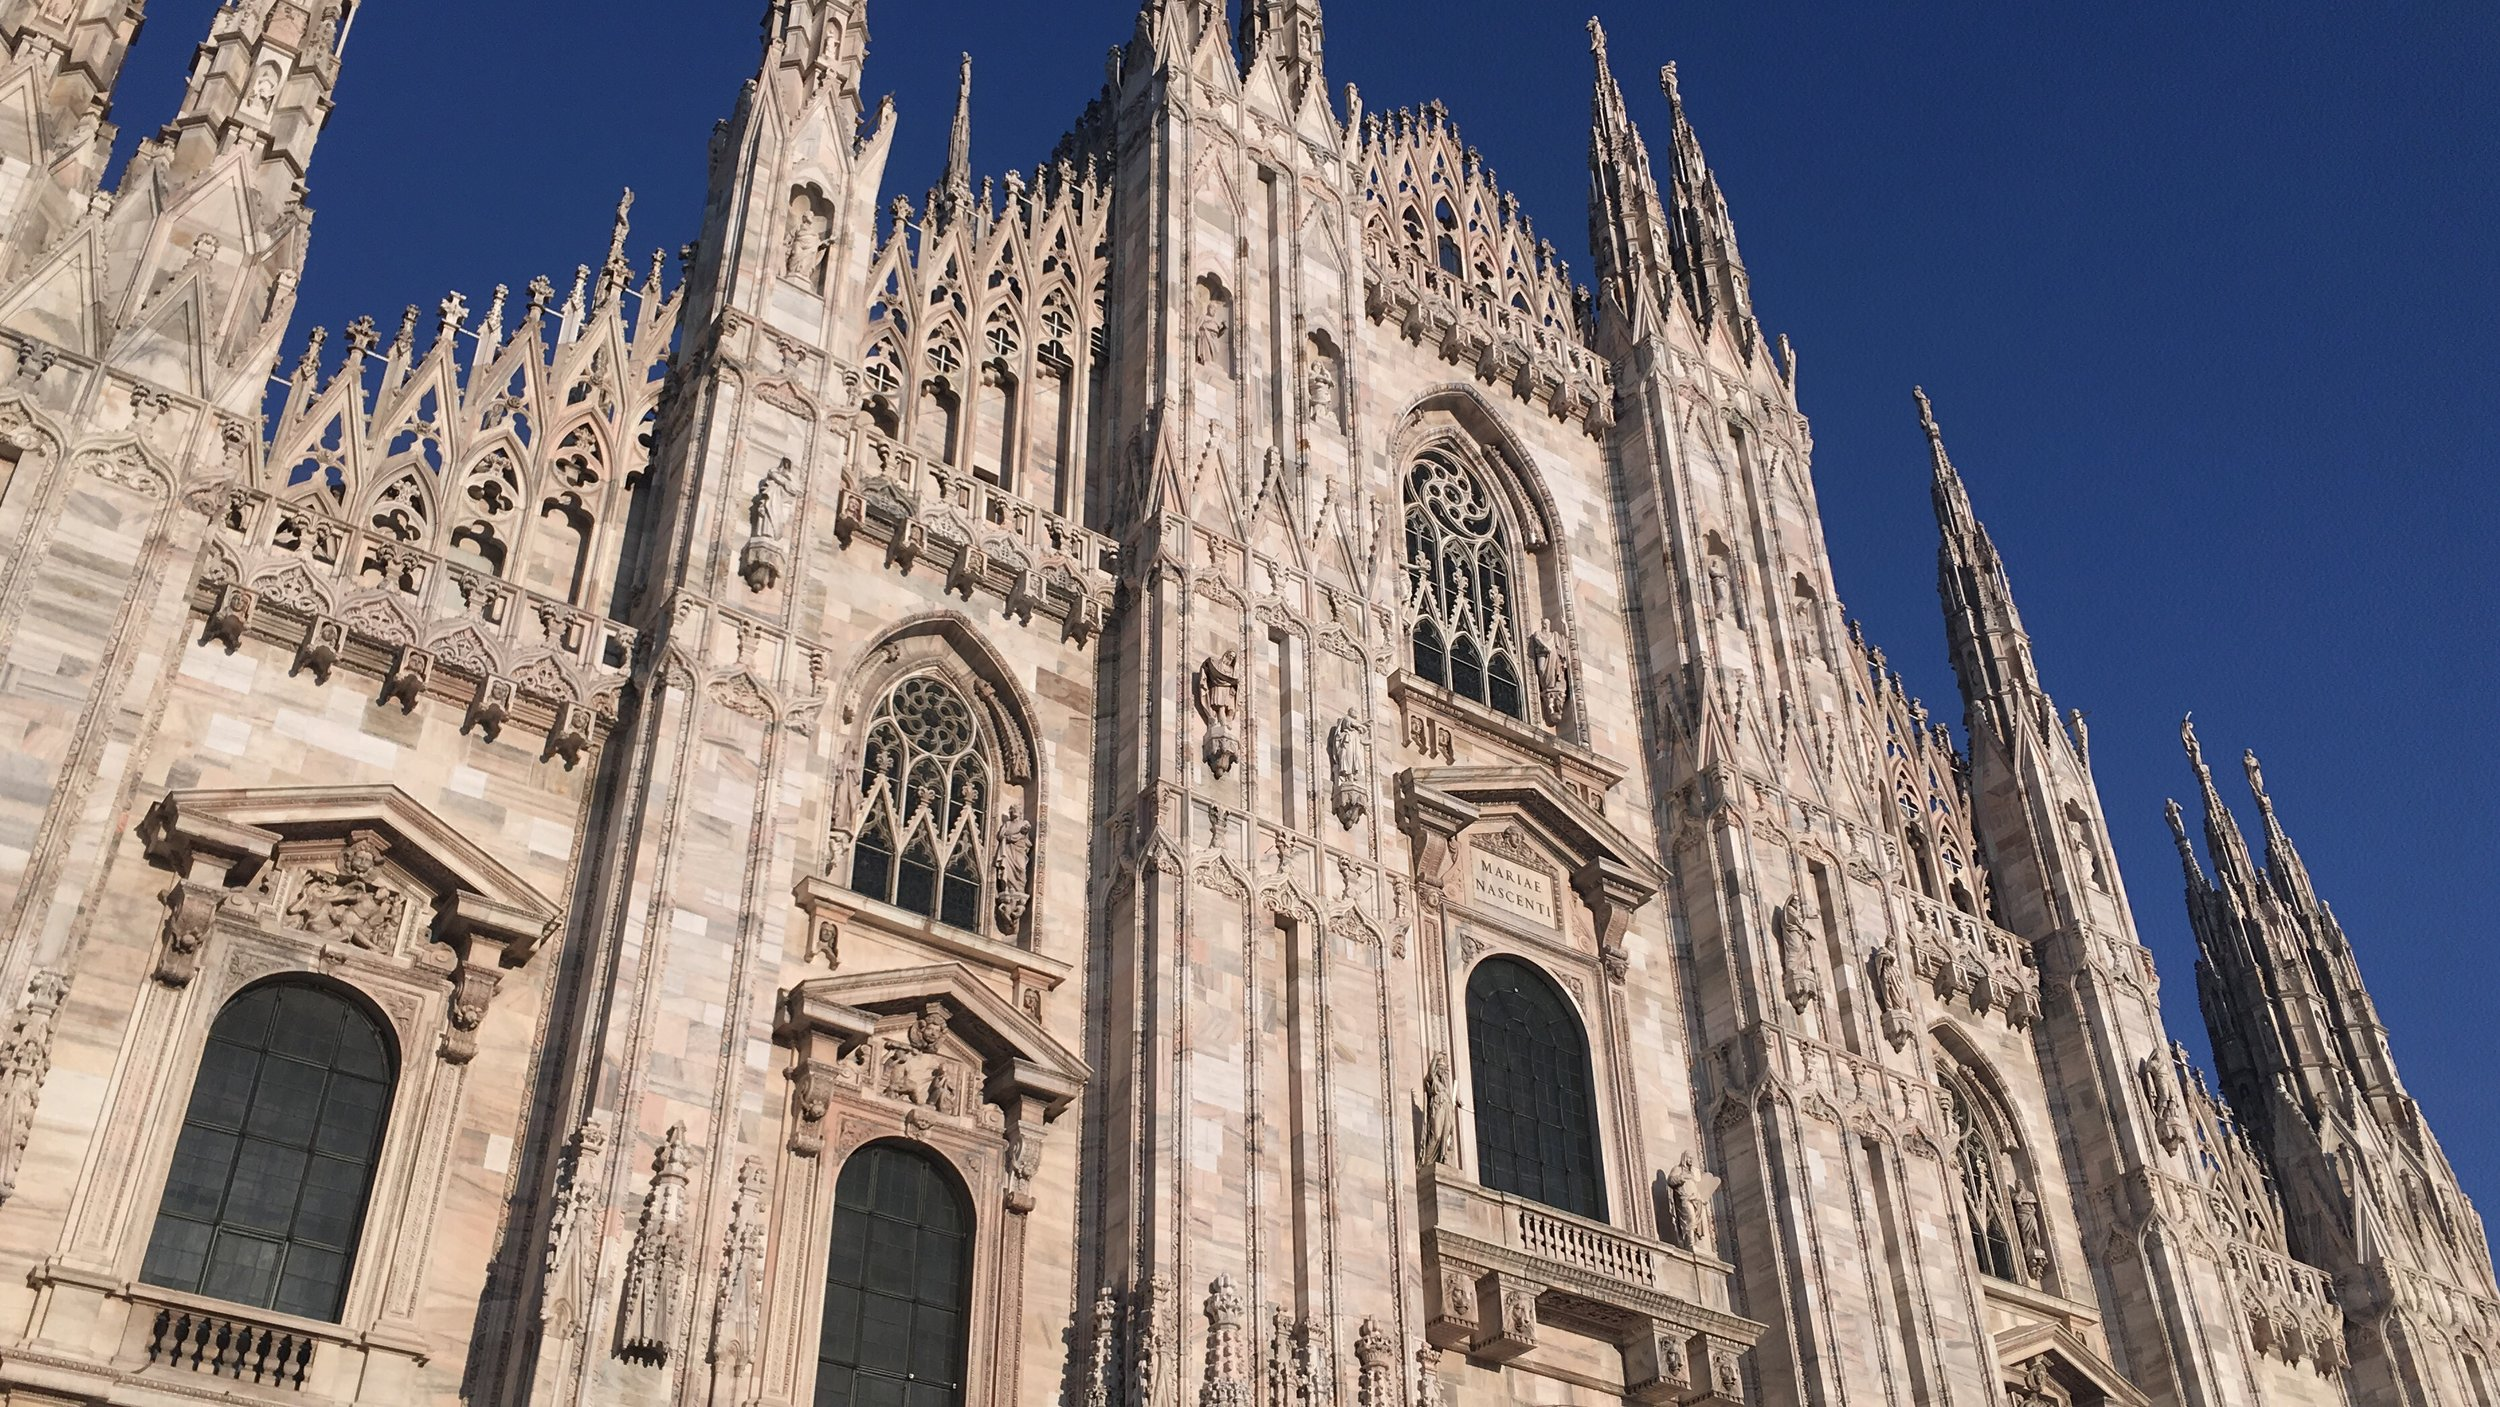 Milan is a stunning city - the Duomo looked glorious in the Italian sunshine.